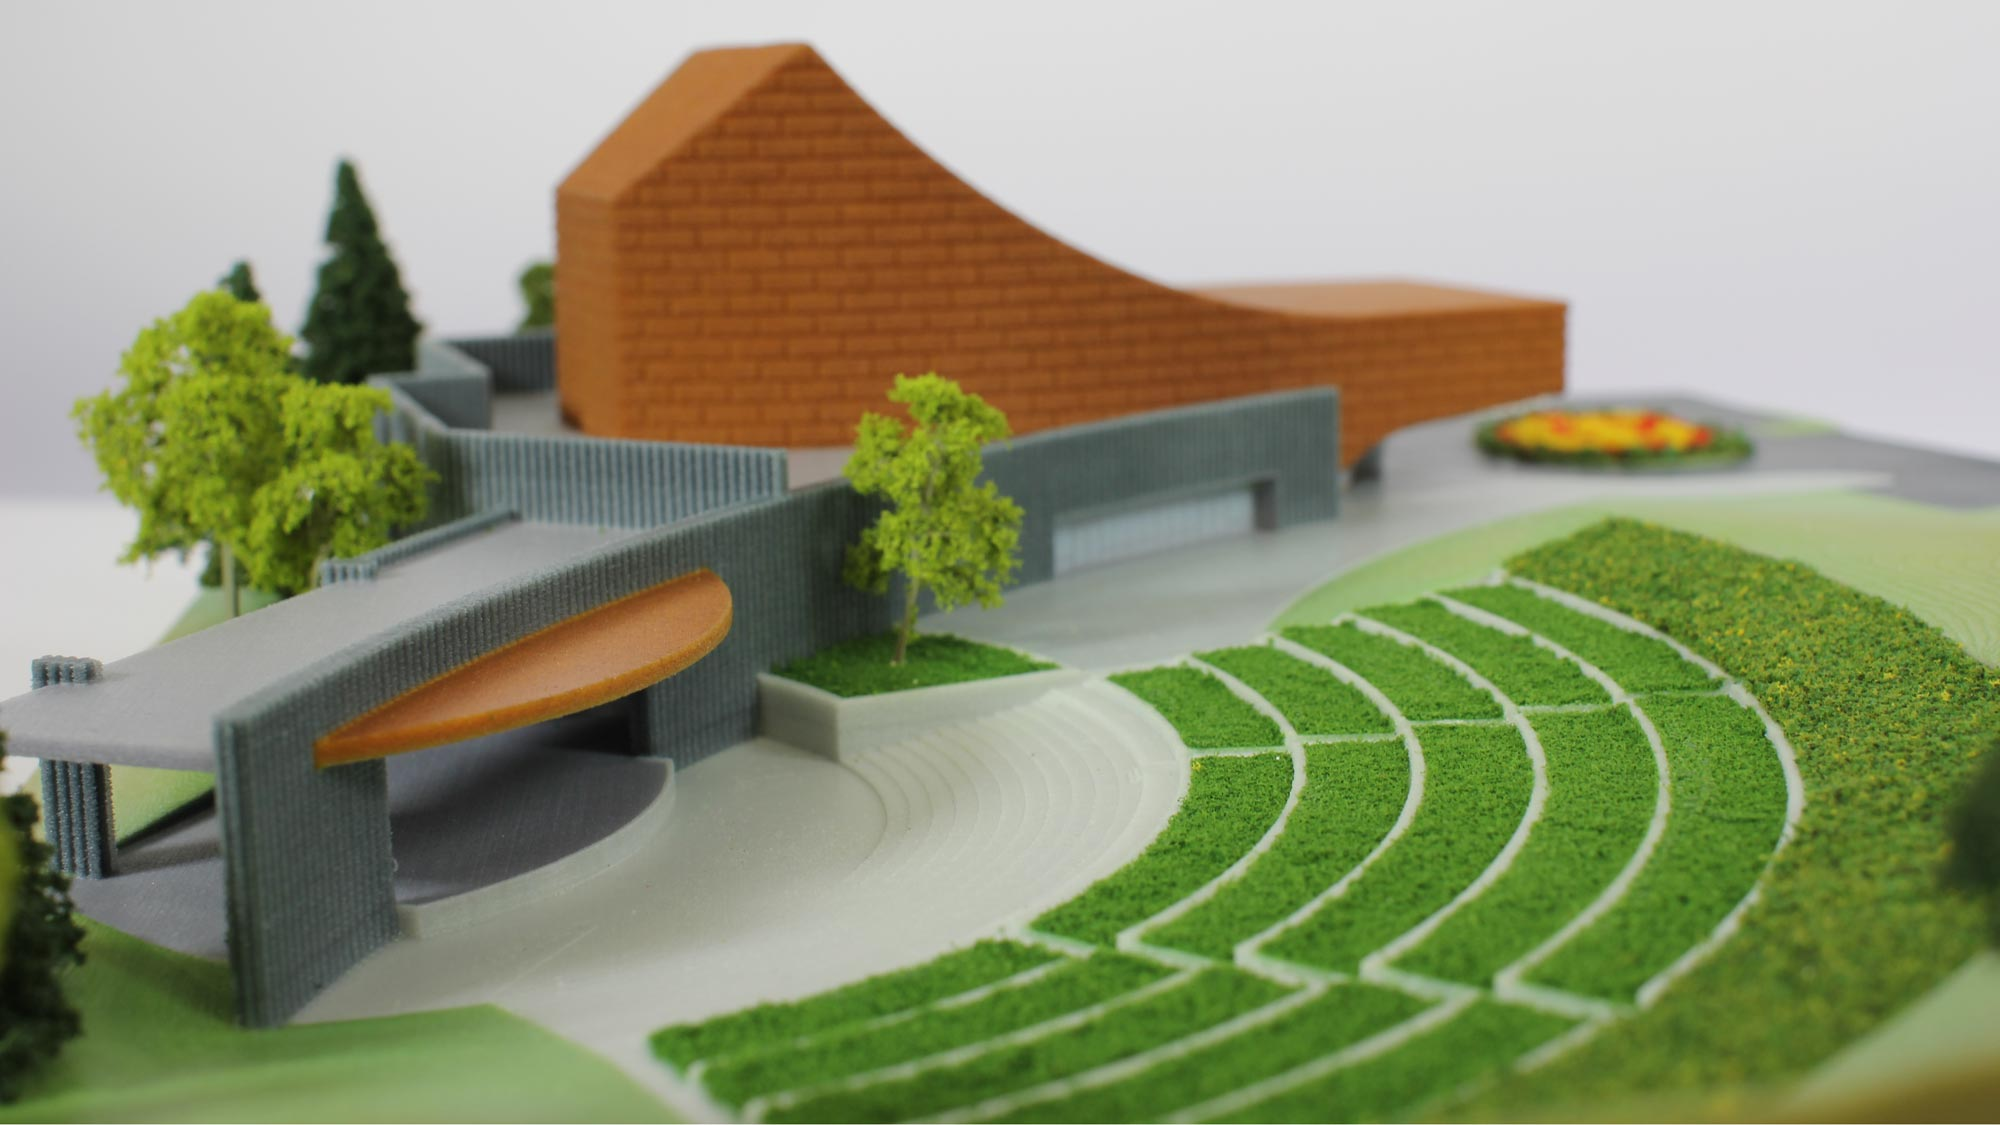 Commercial architectural 3d printing in color